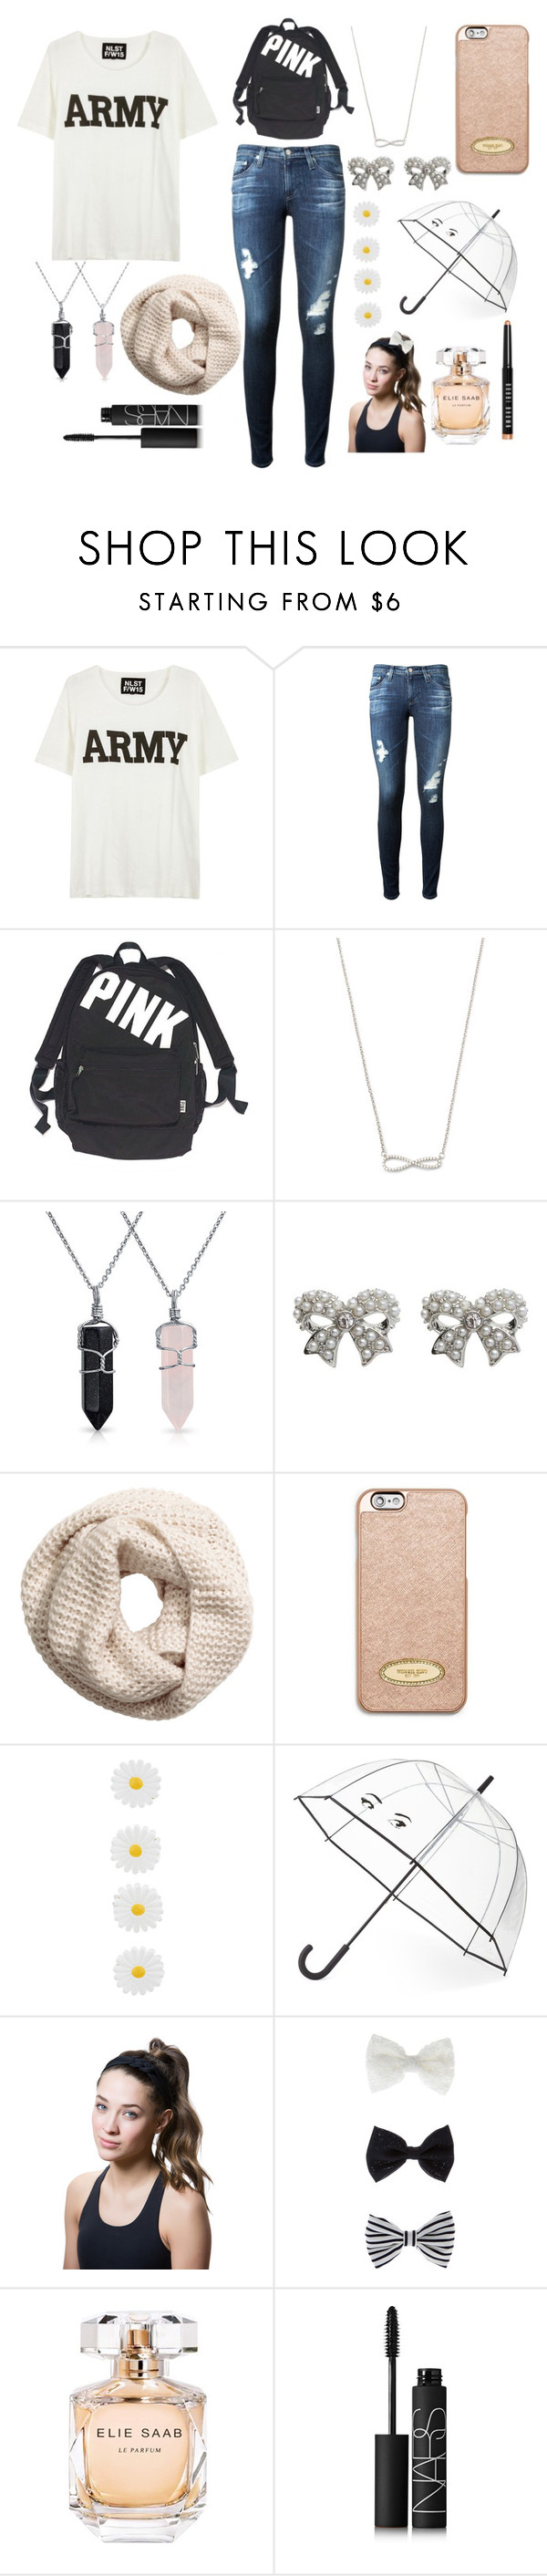 """""""Untitled #198"""" by fashionprincess46 ❤ liked on Polyvore featuring NLST, AG Adriano Goldschmied, Victoria's Secret, Bling Jewelry, M&Co, H&M, MICHAEL Michael Kors, Monsoon, Kate Spade and Titika"""